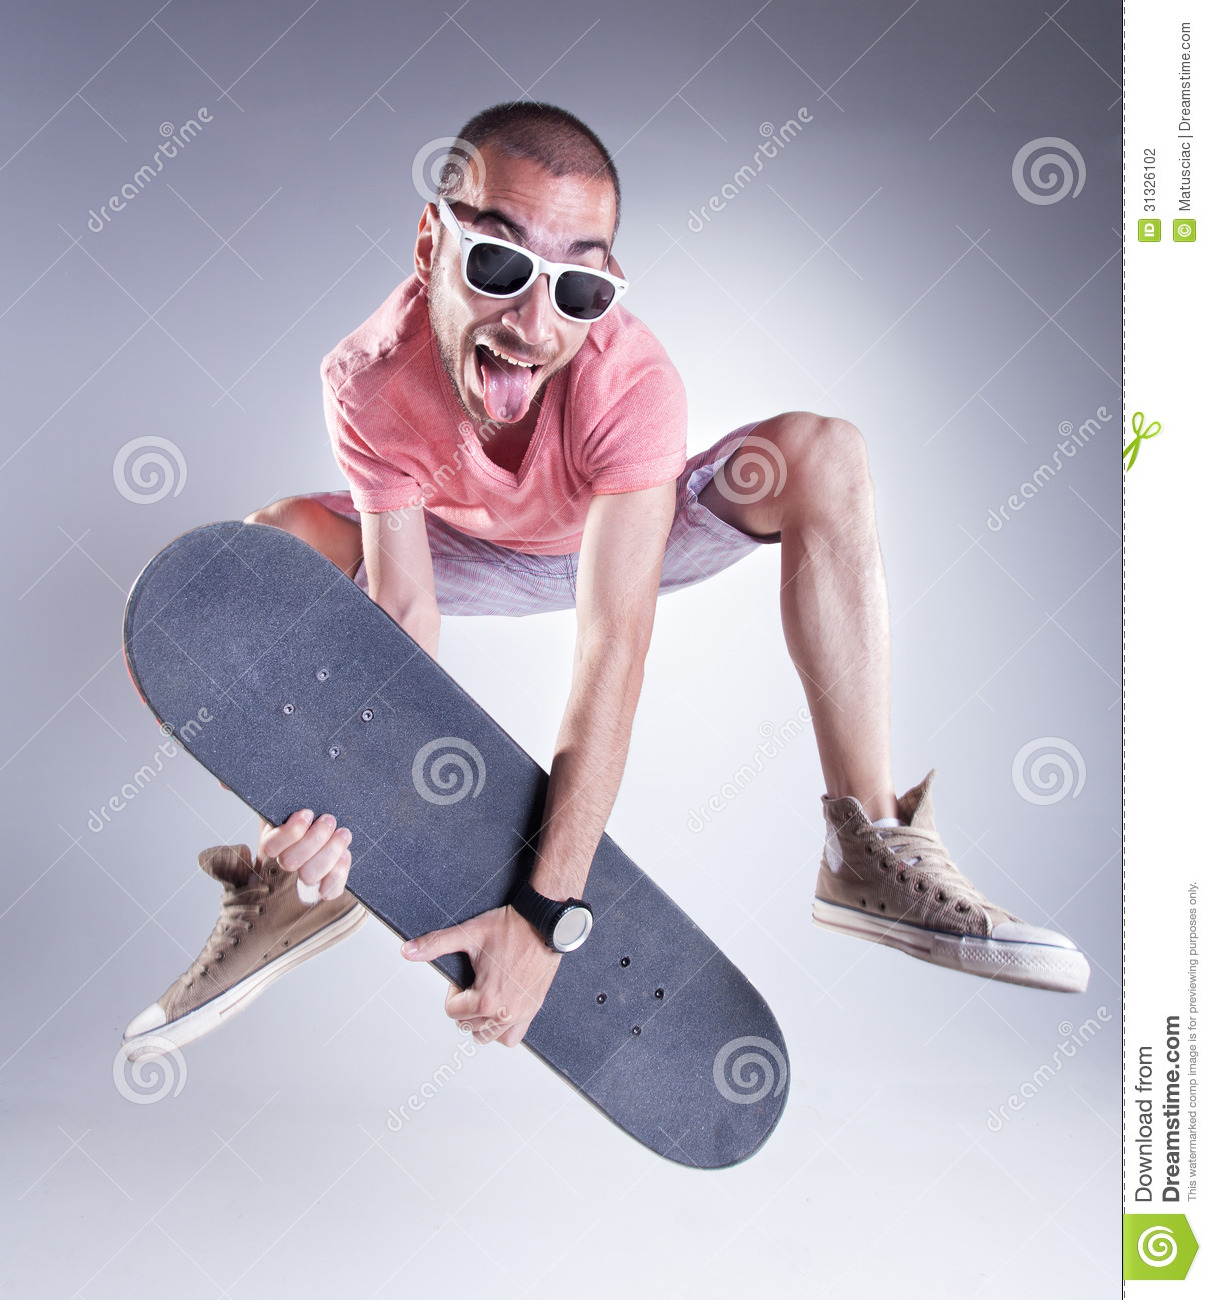 crazy guy jumping with a skateboard making funny faces